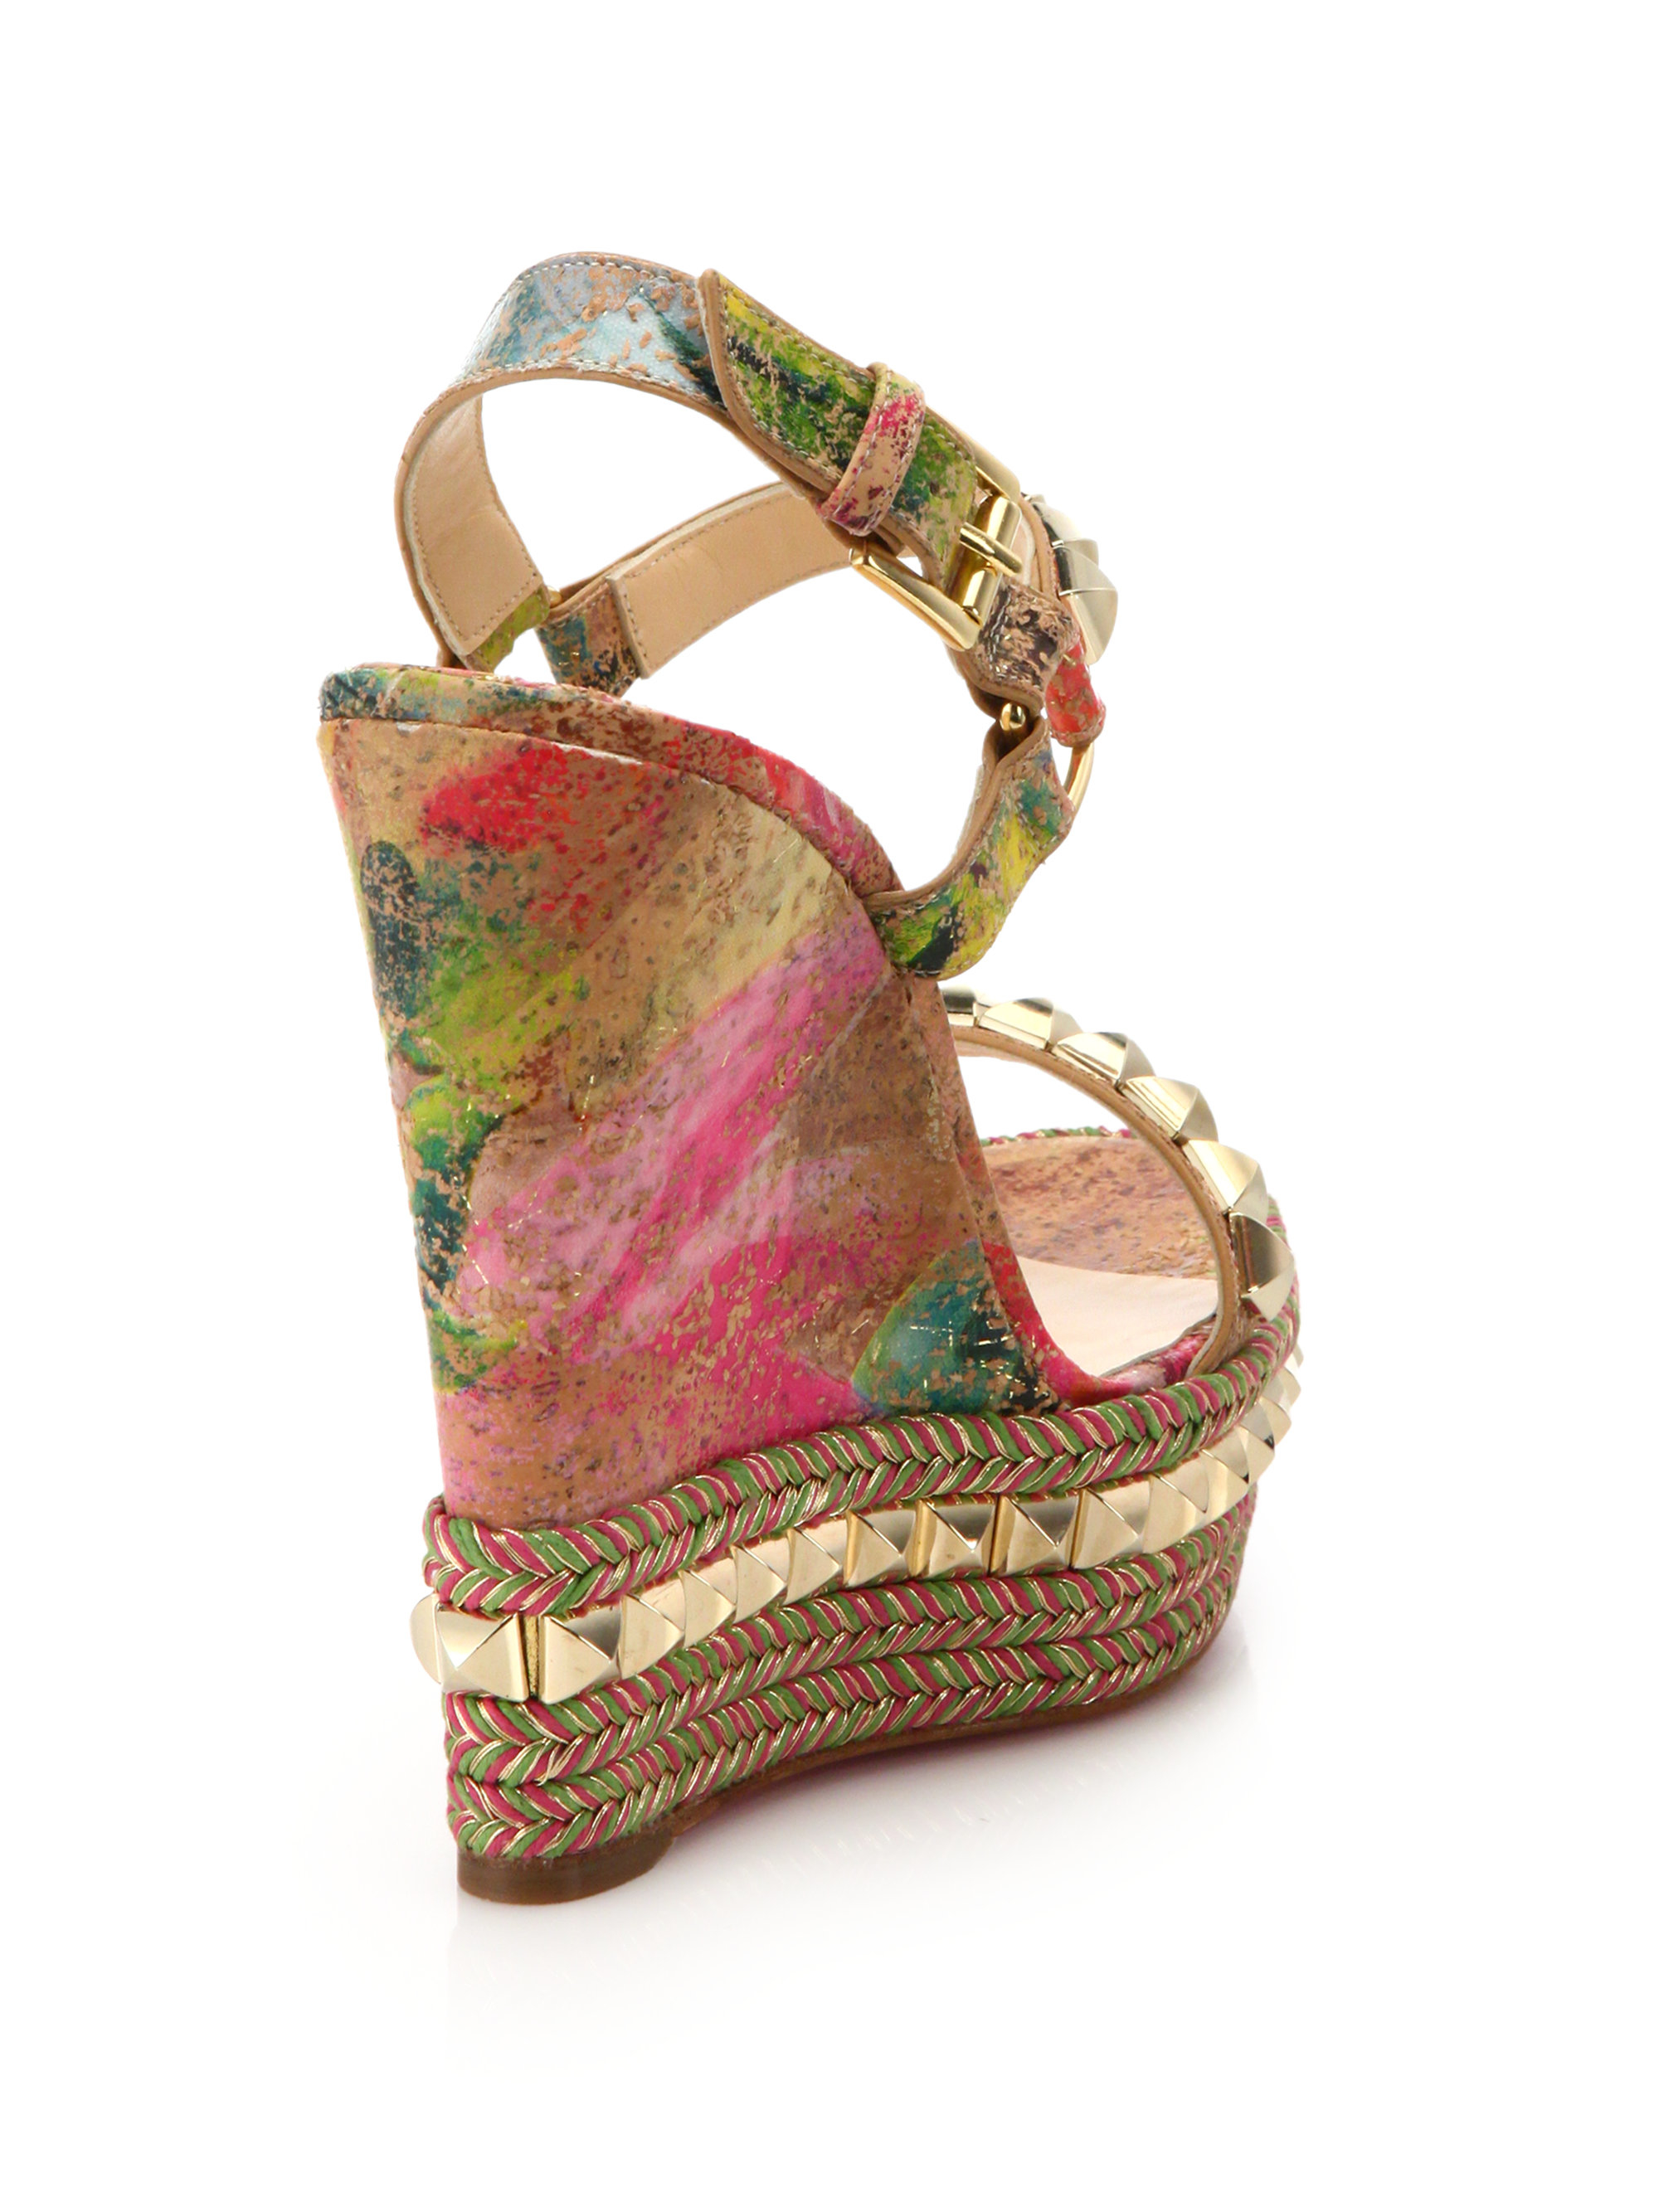 c5c1c669bba1 ... best price lyst christian louboutin pyramid studded cork espadrille  wedge sandals 2721a 8fe00